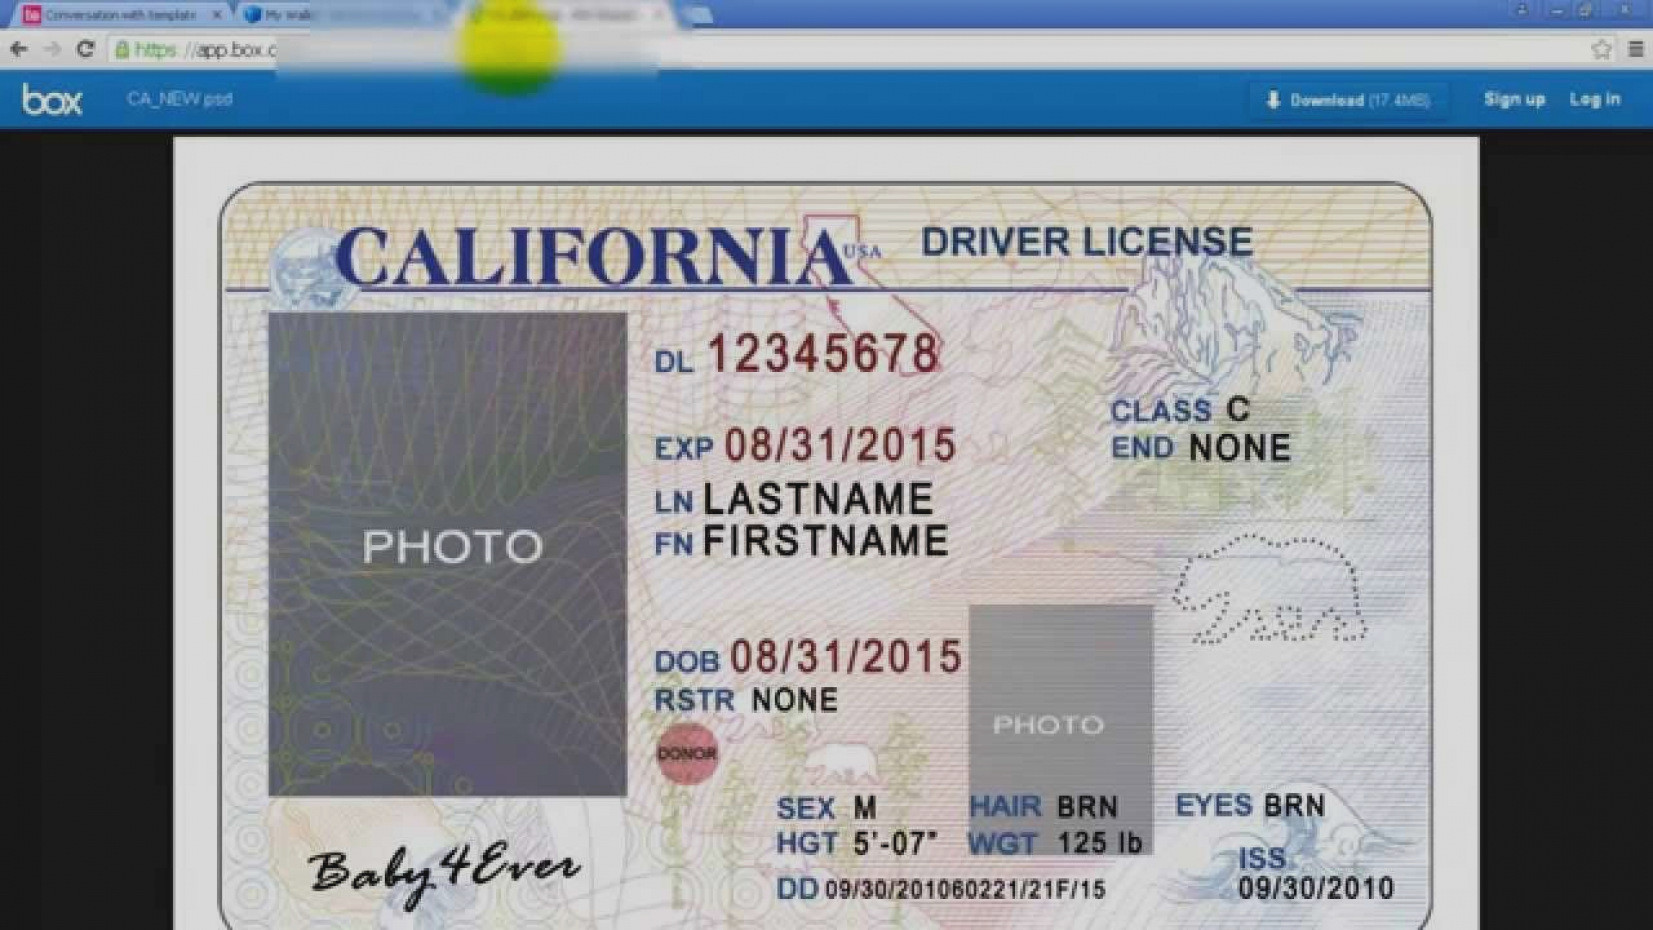 Blank Drivers License Template   Sop Examples With Blank Drivers